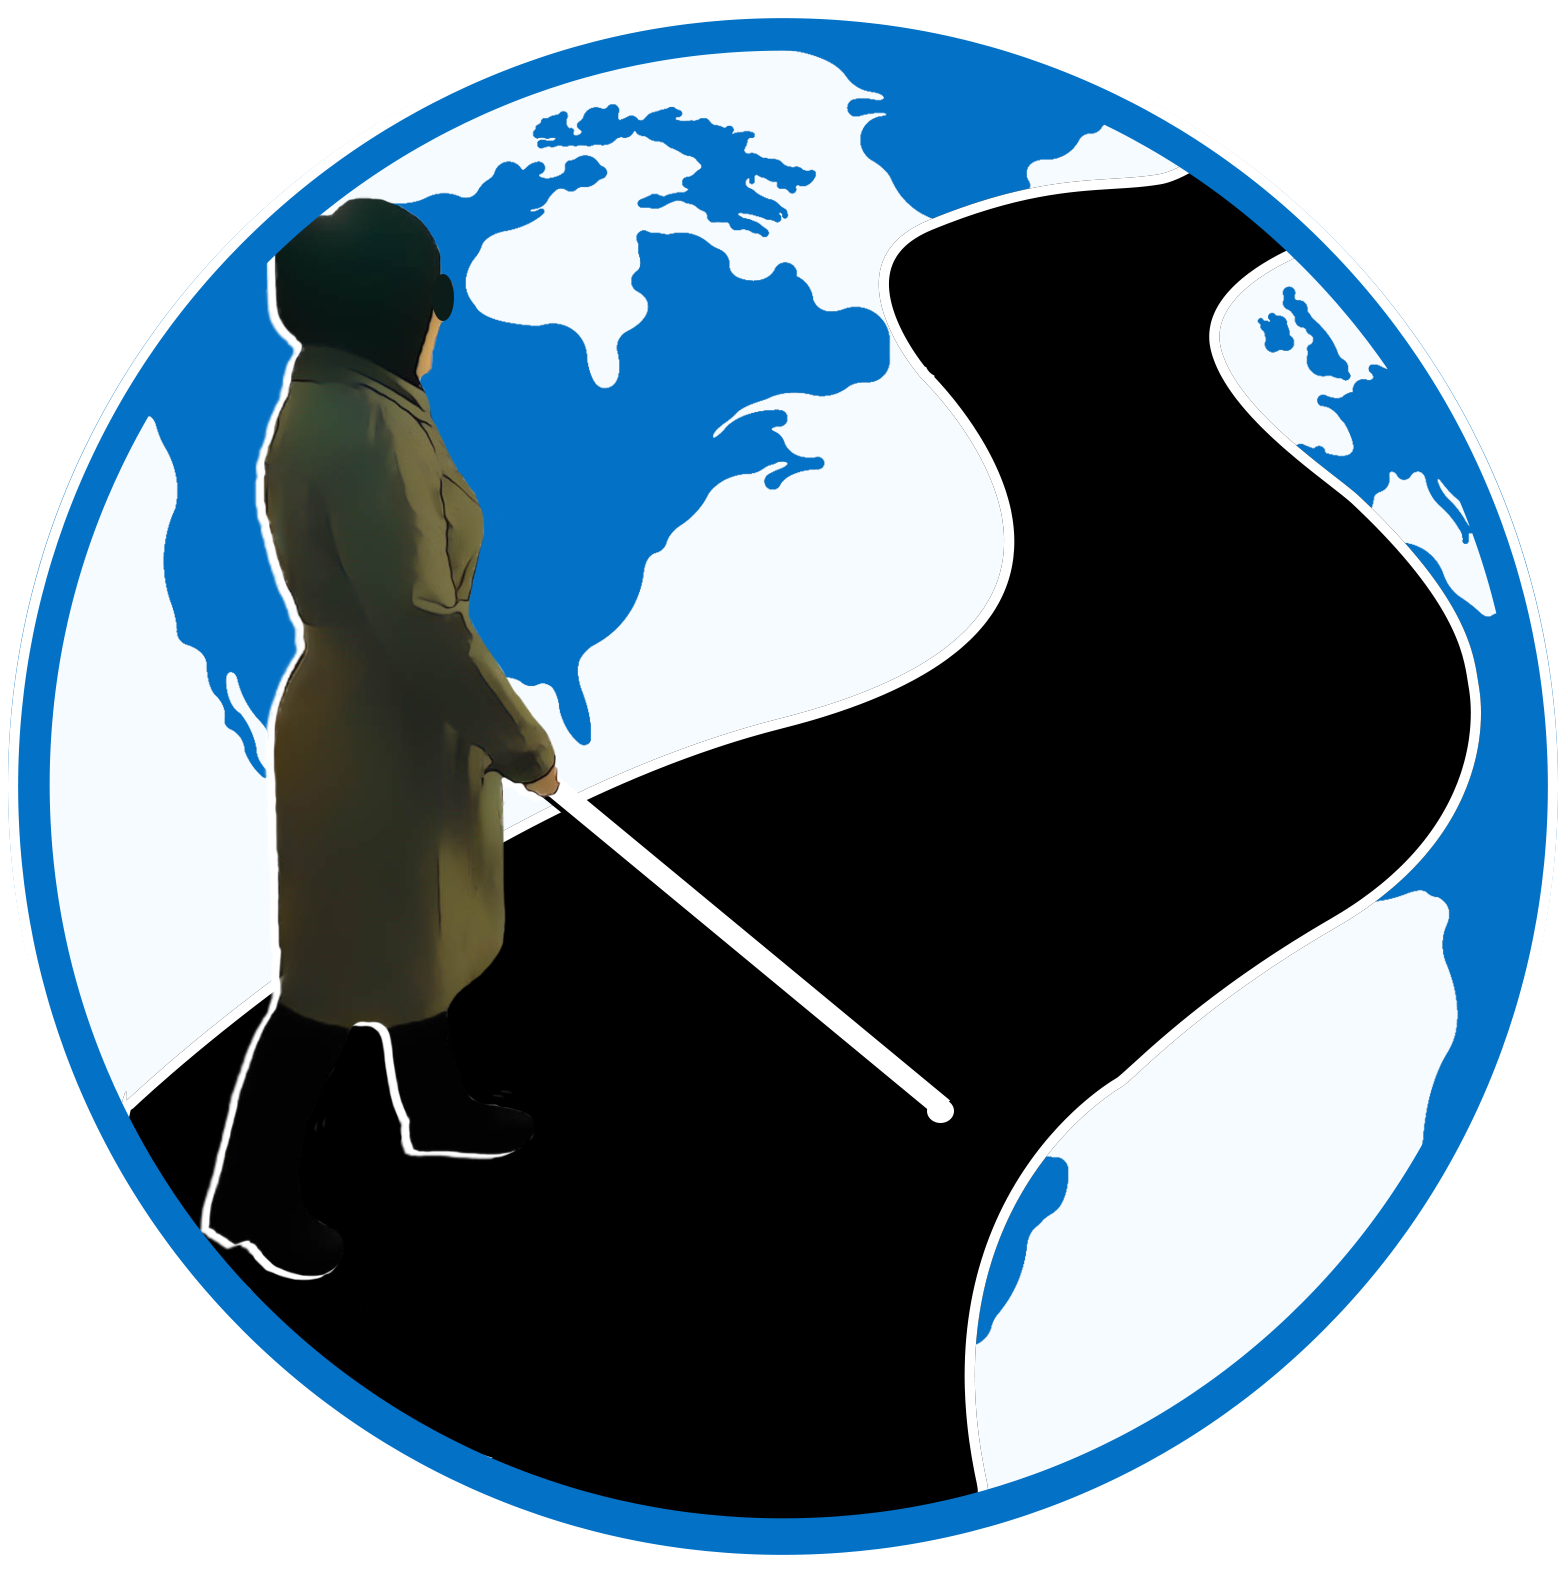 Planes, Trains, and Canes logo showing women with cane walking down a road that spans the globe